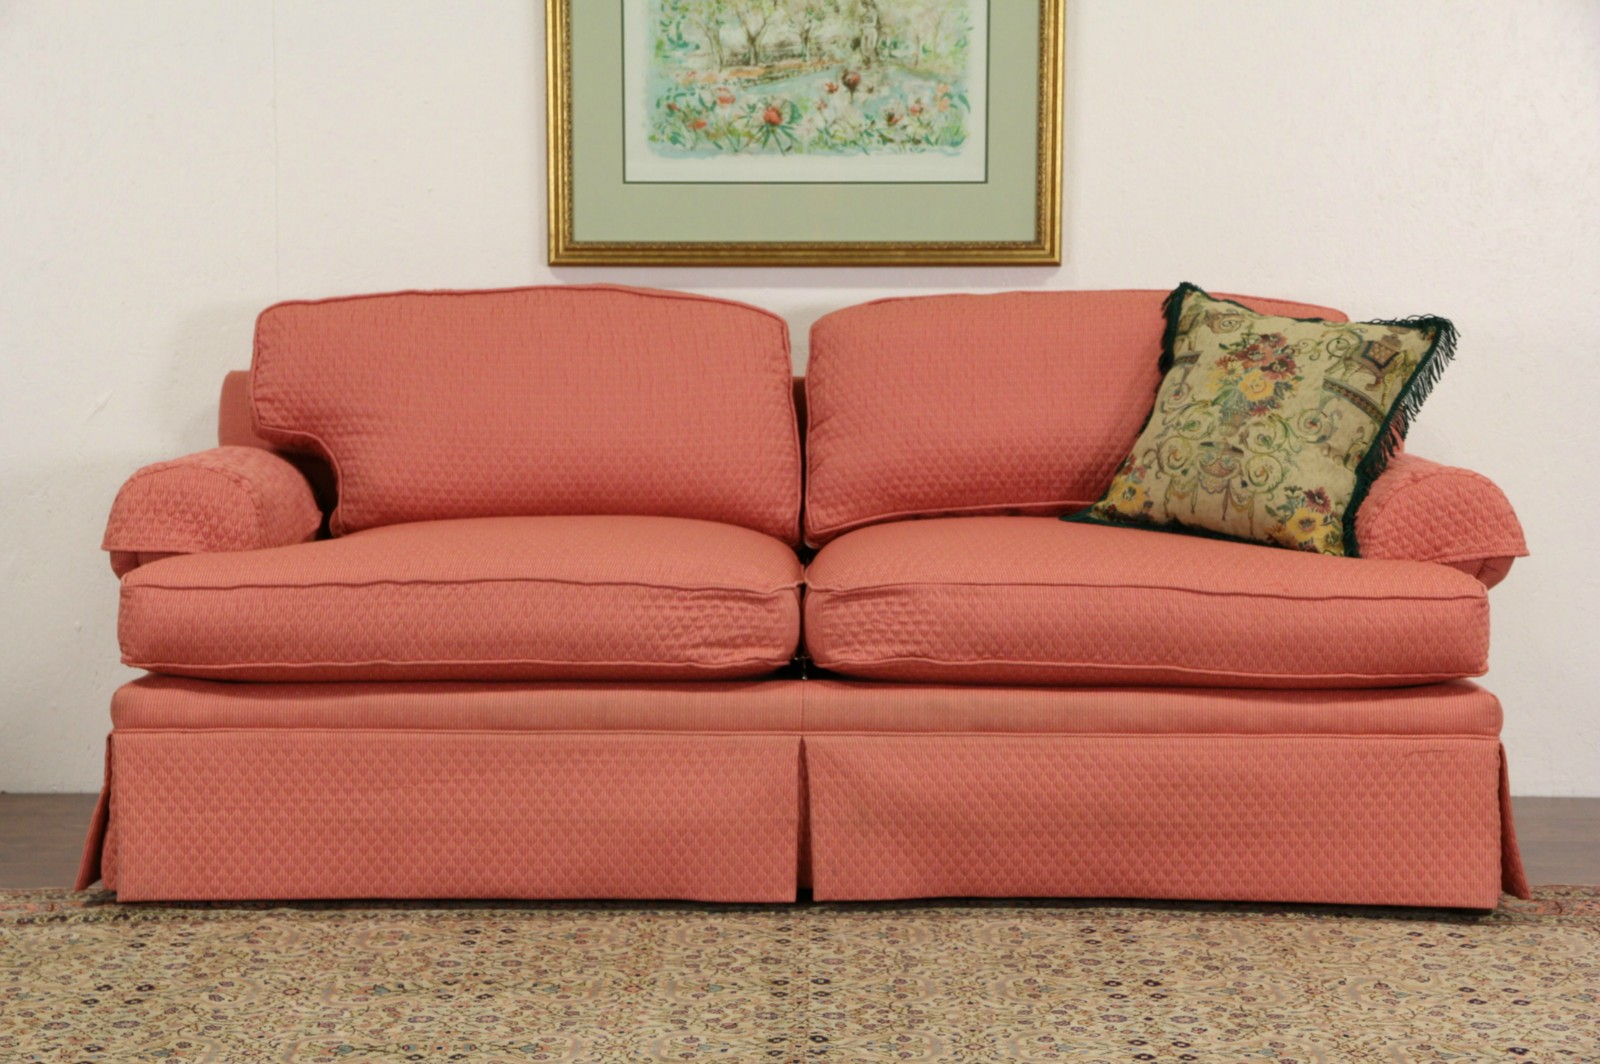 Delicieux Milling Road By Baker Signed Vintage 2 Cushion Sofa